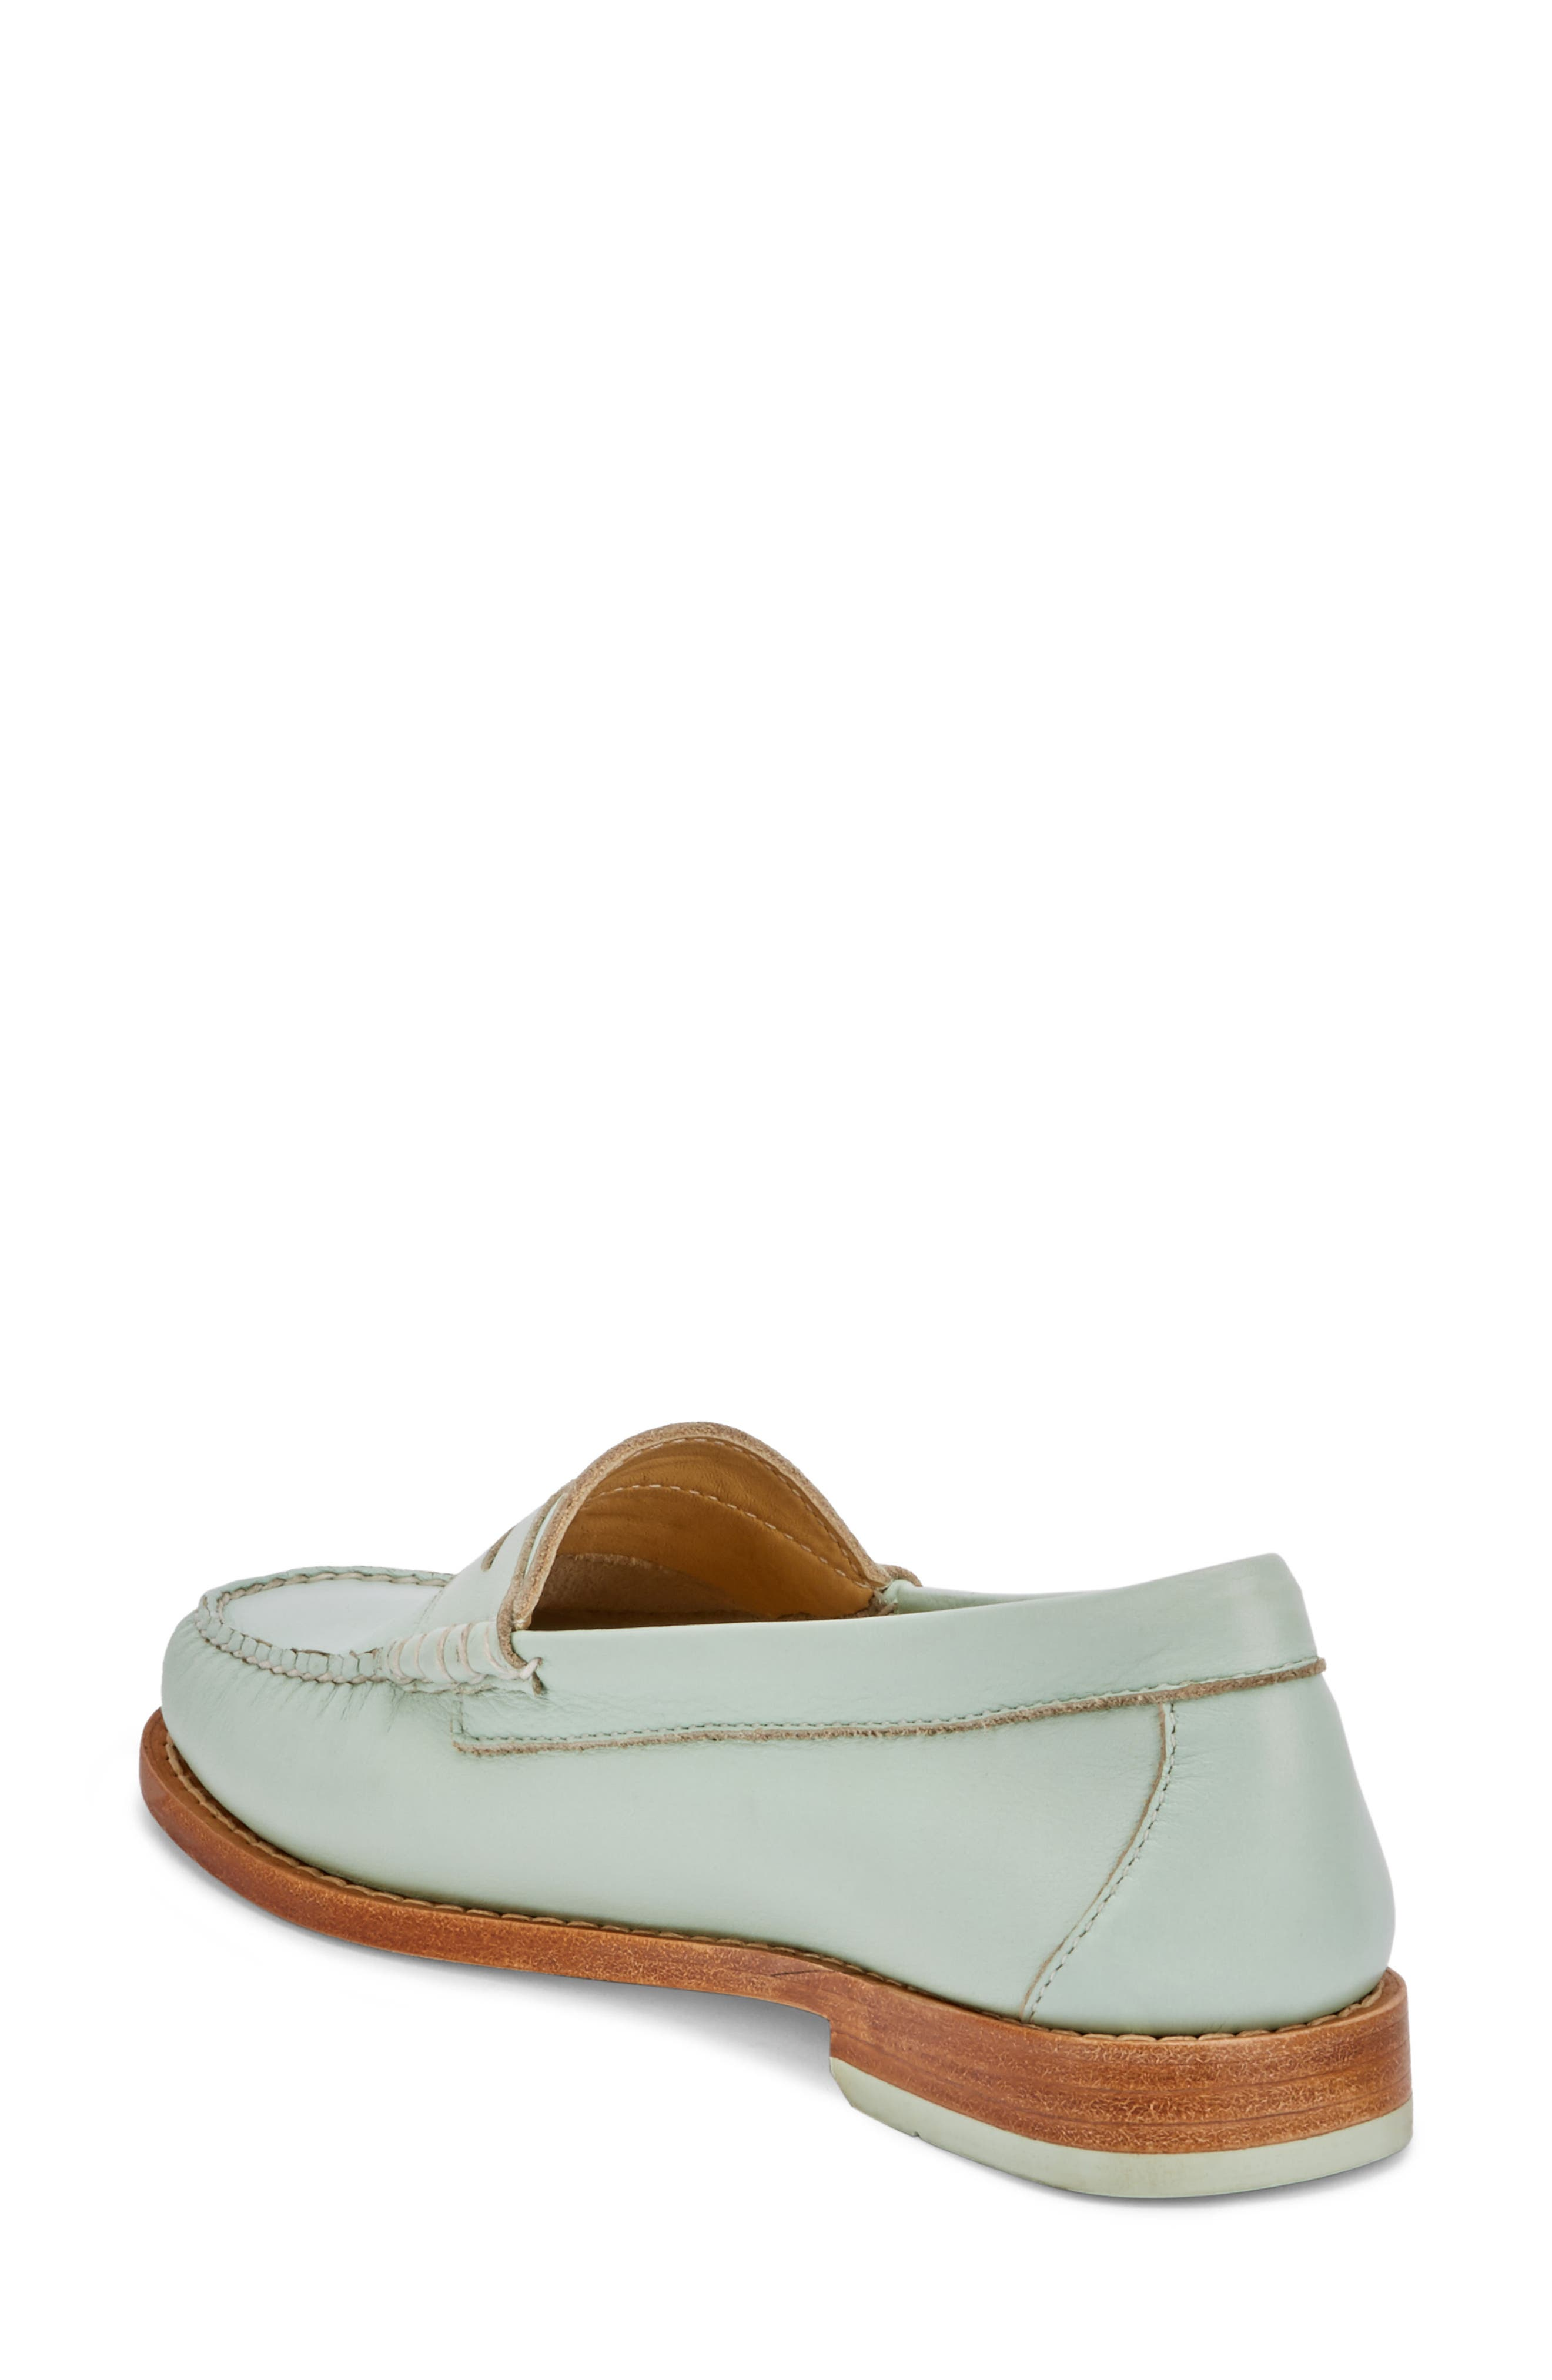 'Whitney' Loafer,                             Alternate thumbnail 2, color,                             MINT GREEN LEATHER